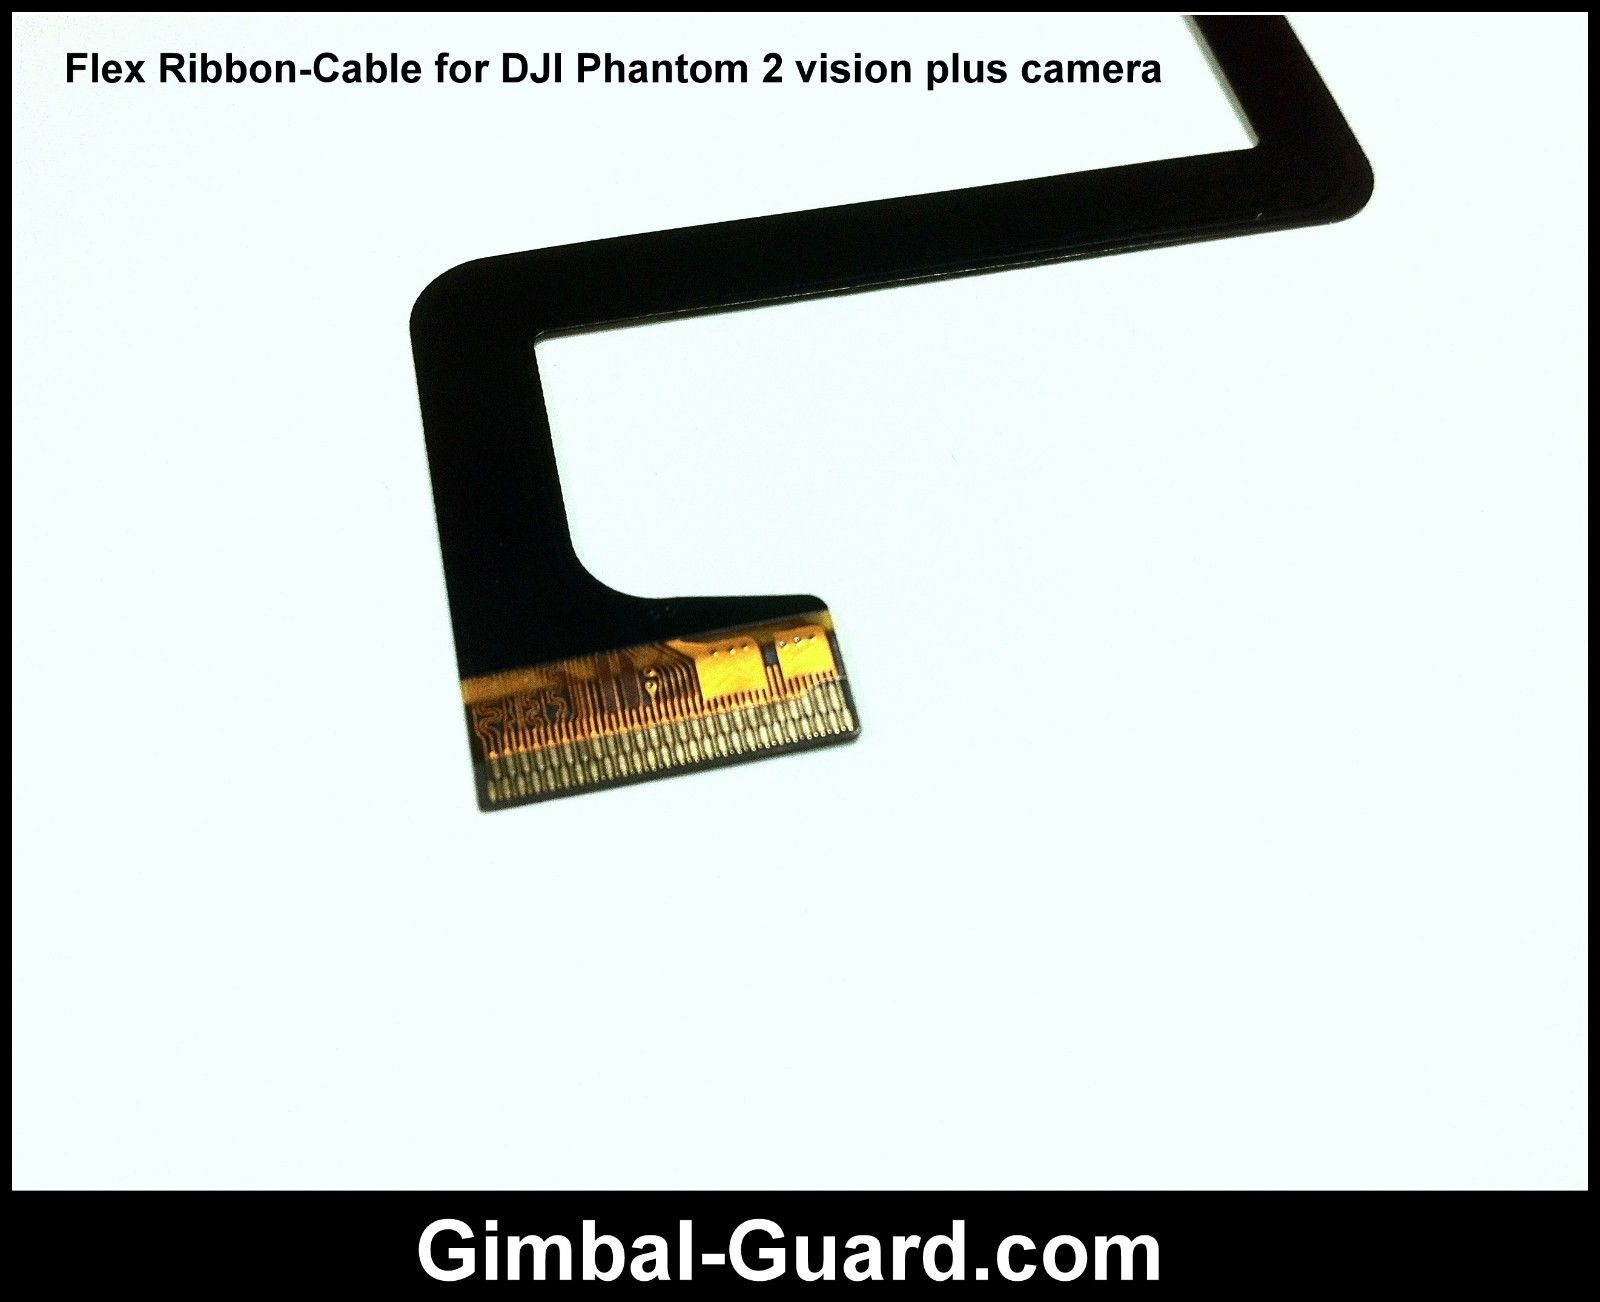 1ribbon-cable_OEM_FLEX_FOR_DJI_P2V+.JPG